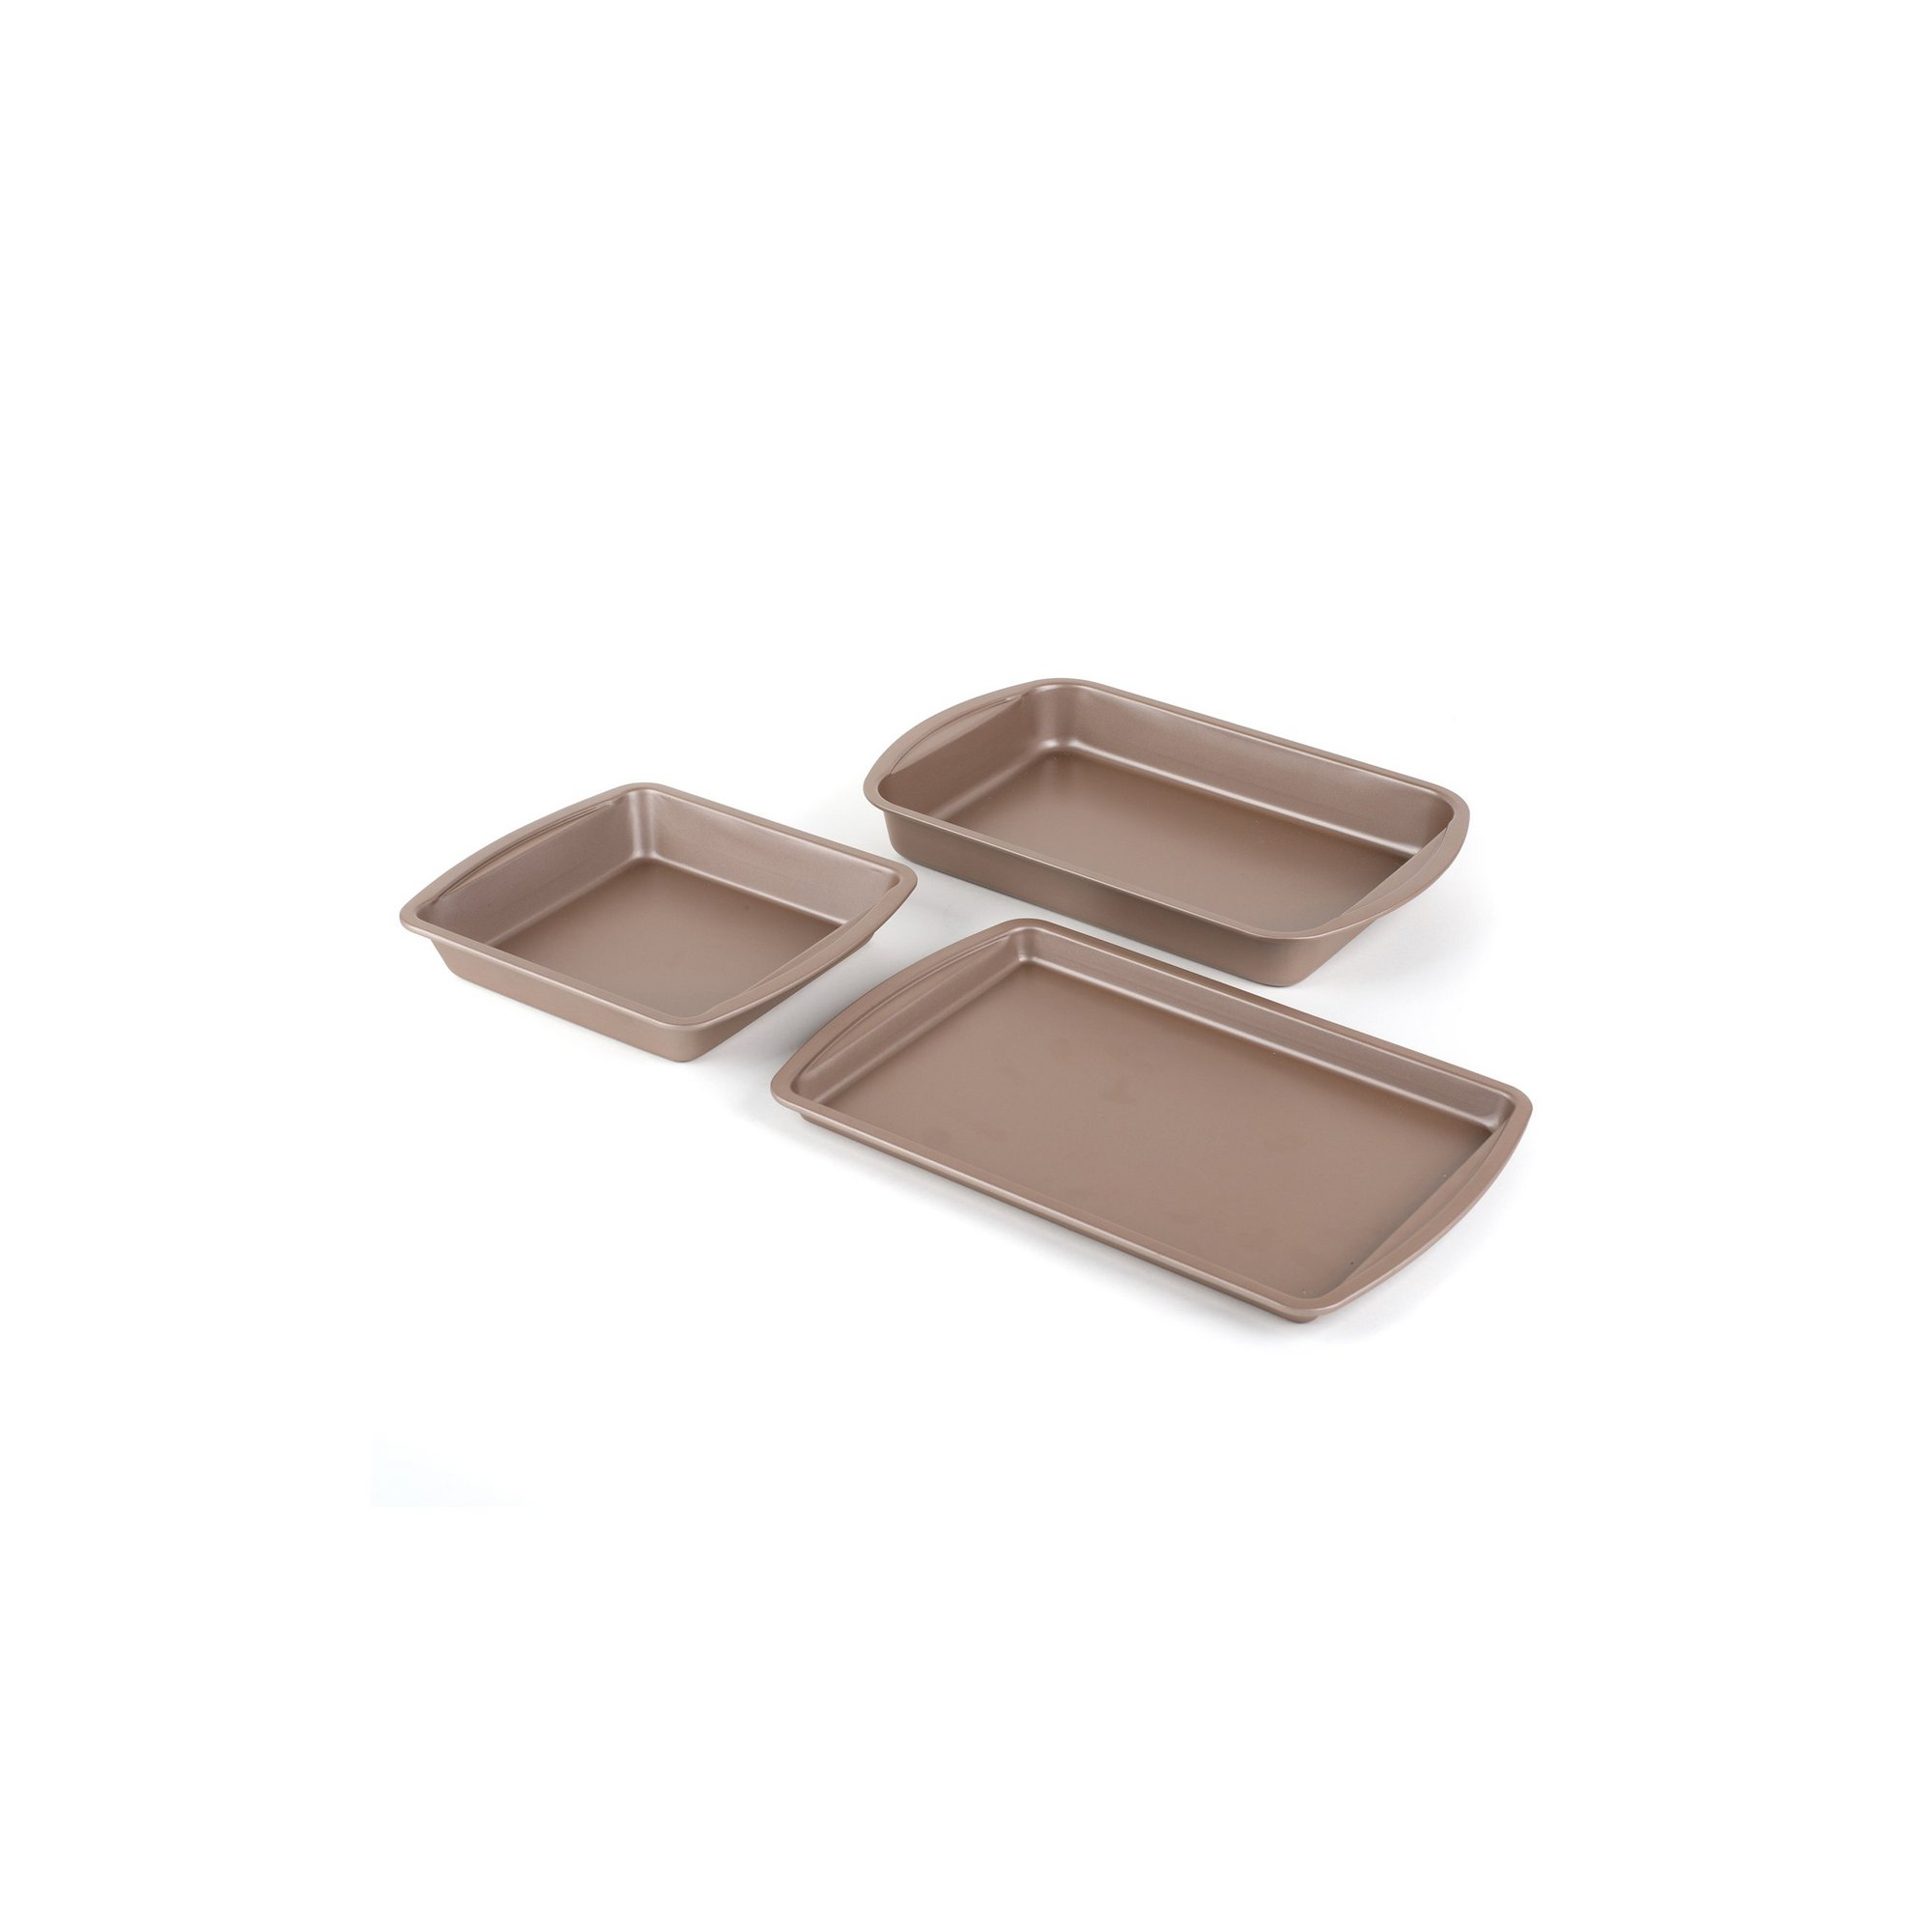 Image of 3 Piece Salter Oven Tray Combo Set